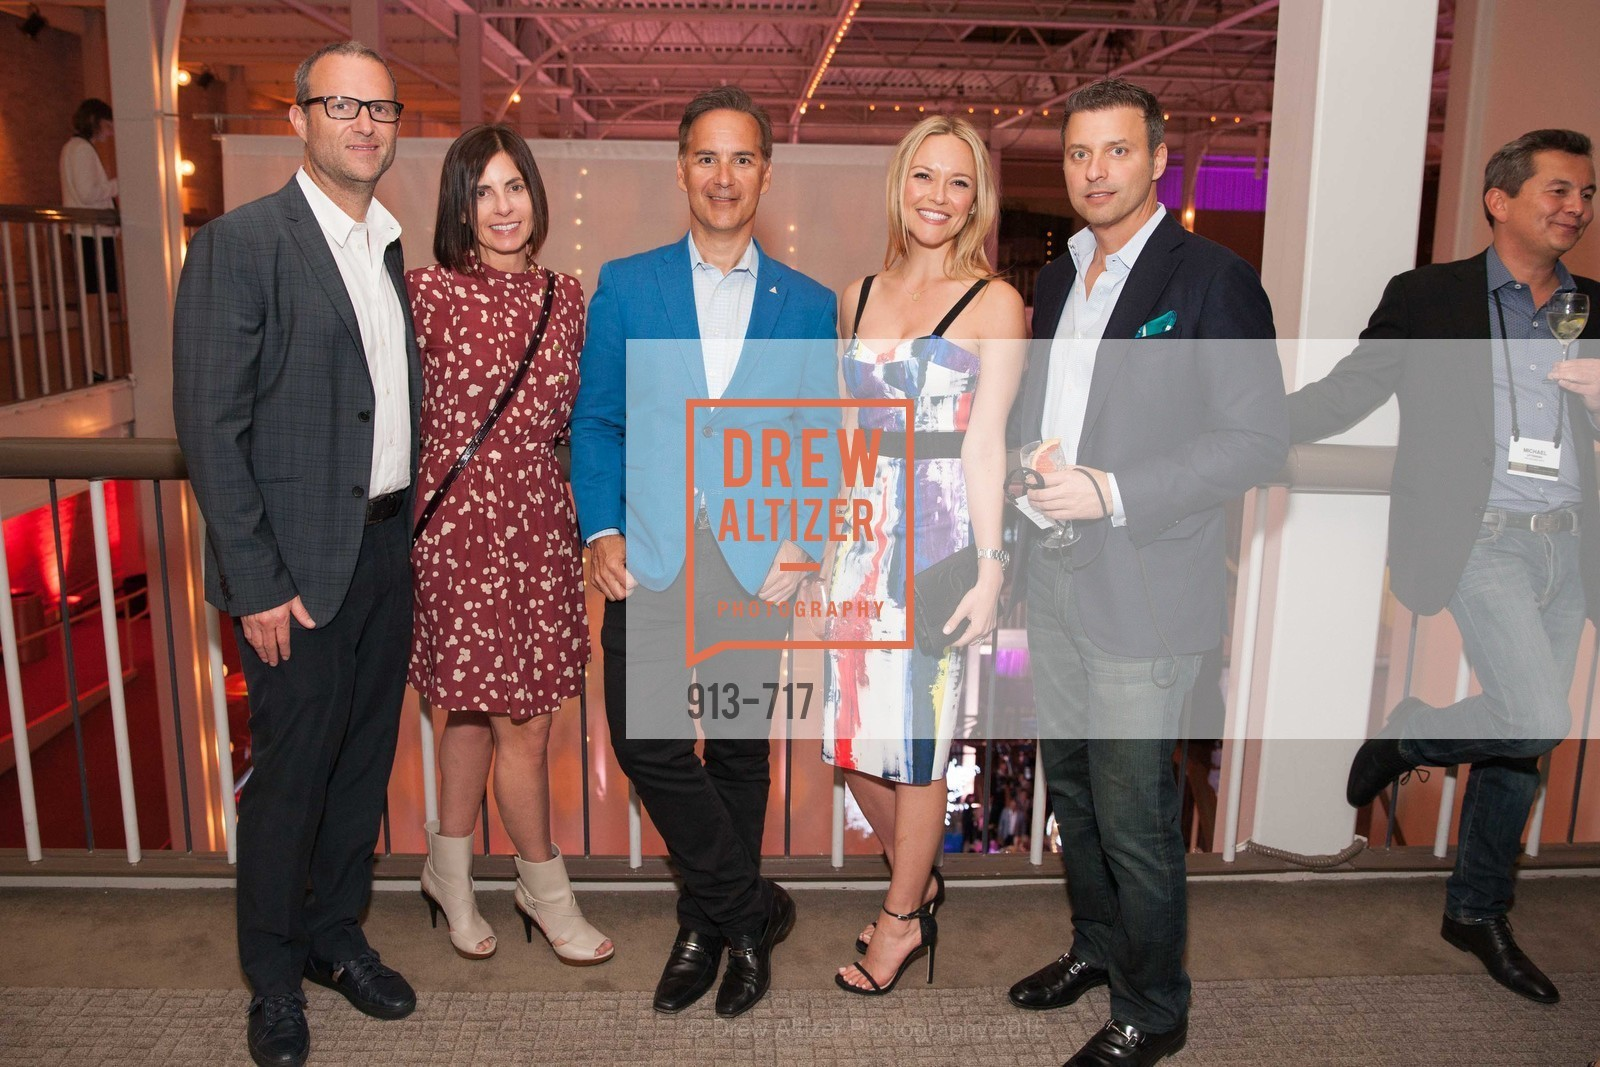 David Lake, Deborah Lake, Duncan Toppliss, Lisa Oberwager, Brad Oberwager, YPO Wine Festival, US, May 12th, 2015,Drew Altizer, Drew Altizer Photography, full-service agency, private events, San Francisco photographer, photographer california